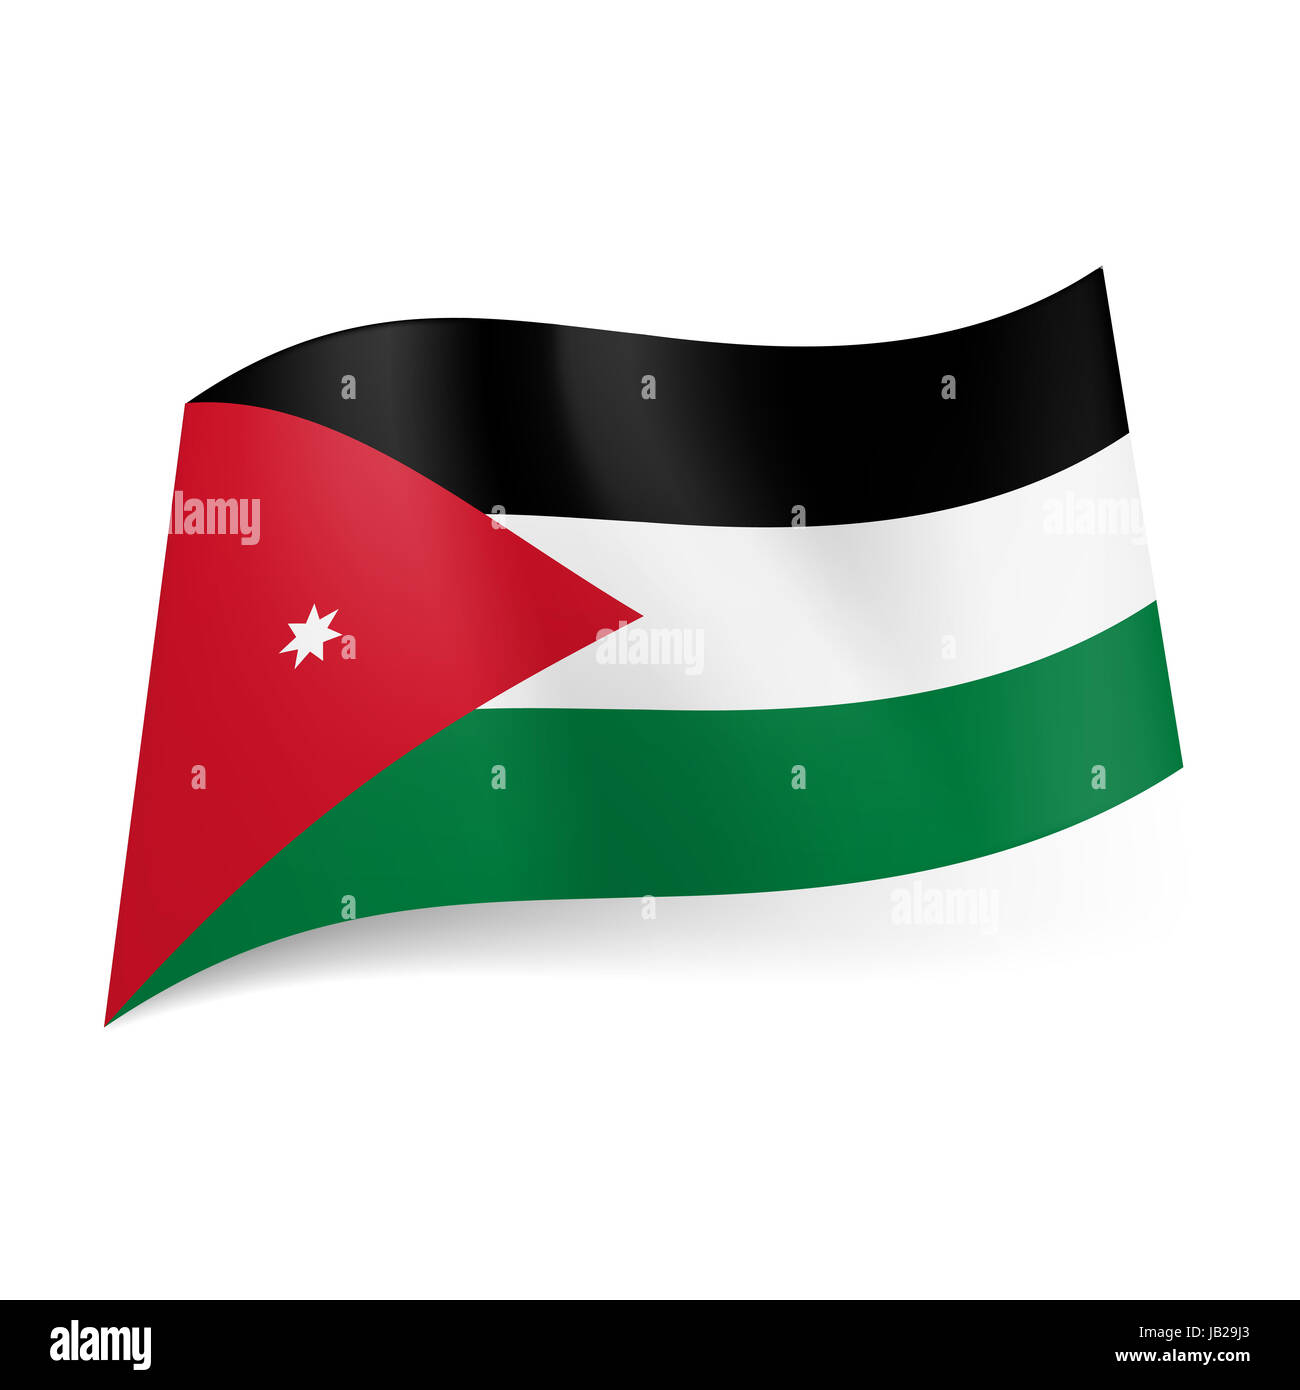 National flag of Jordan: black, white and green horizontal stripes, red triangle with white star on left side - Stock Image